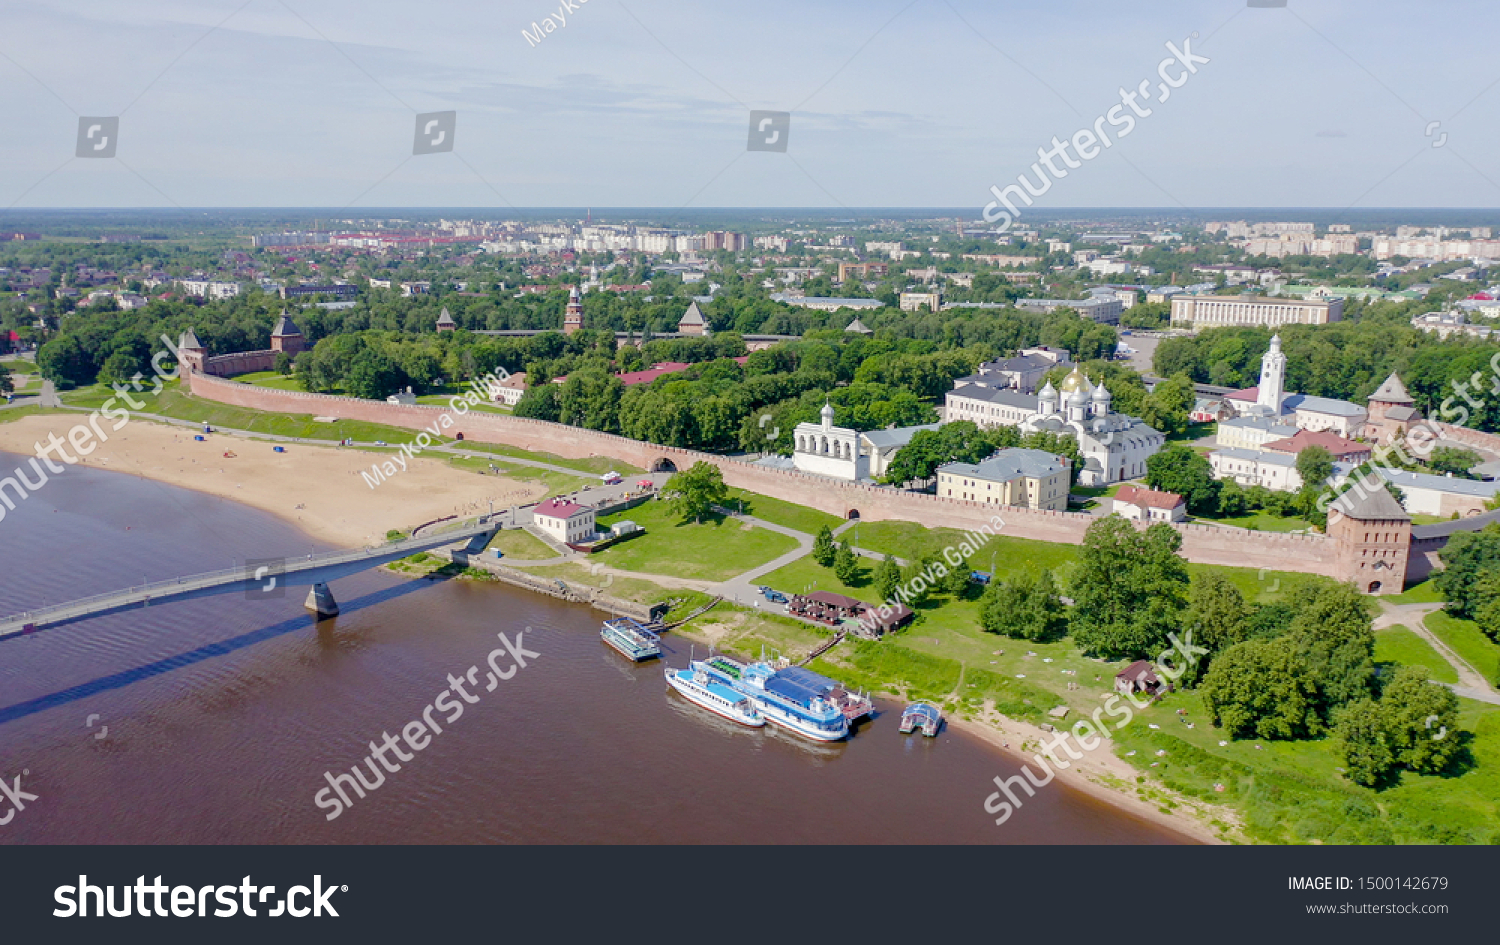 Veliky Novgorod, Russia. Novgorod Kremlin (Detinets), Volkhov River. Flight over the city, From Drone   #1500142679